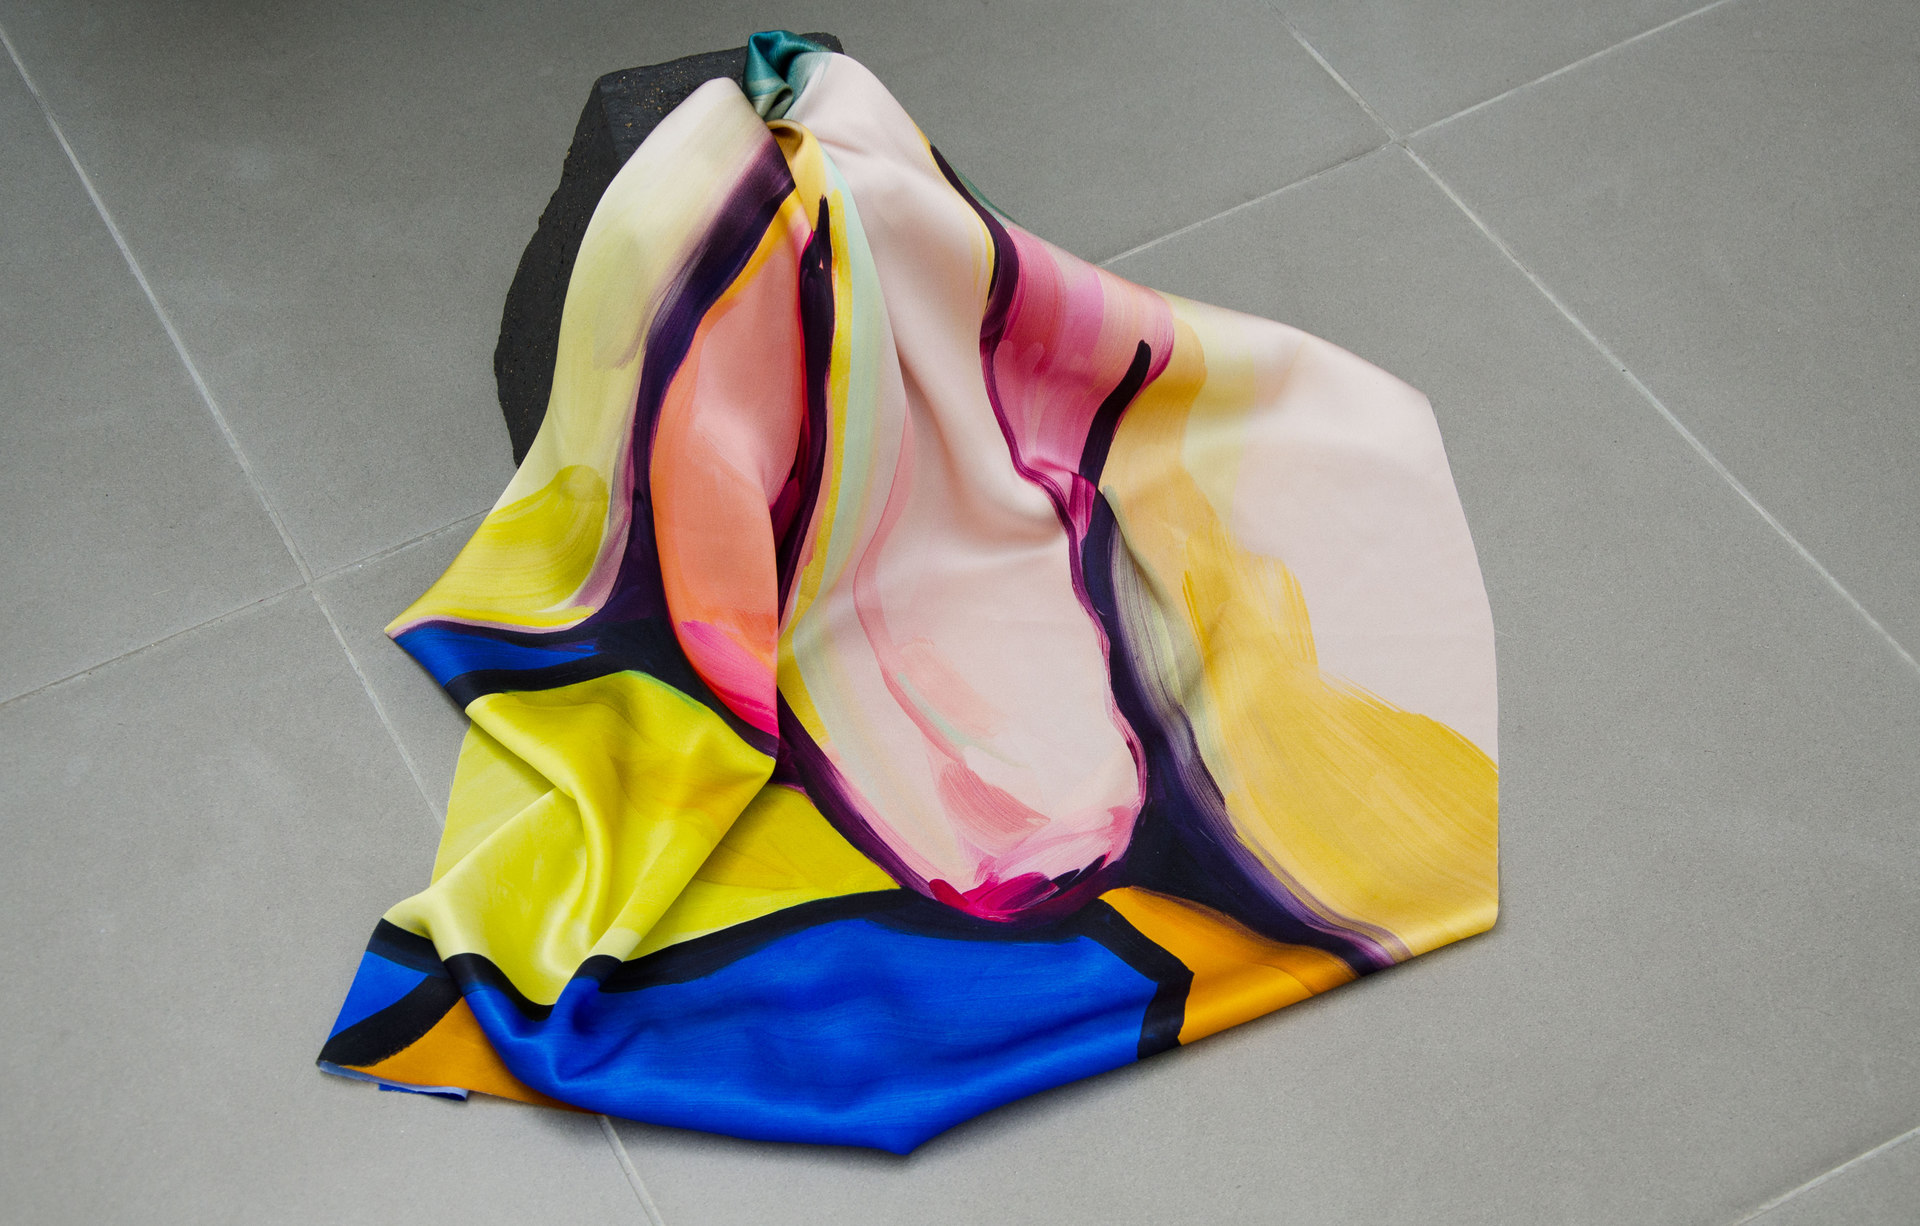 Penumbra, 2014, detail, Celia Hempton, digital print on silk satin, 60 x 72 cm, acrylic paint on wall. Katie Cuddon, dimensions variable ceramic, 125 x 27 x 32 cm, ceramic wax (2x) 21 x 19 x 19 cm, Cell Project Space